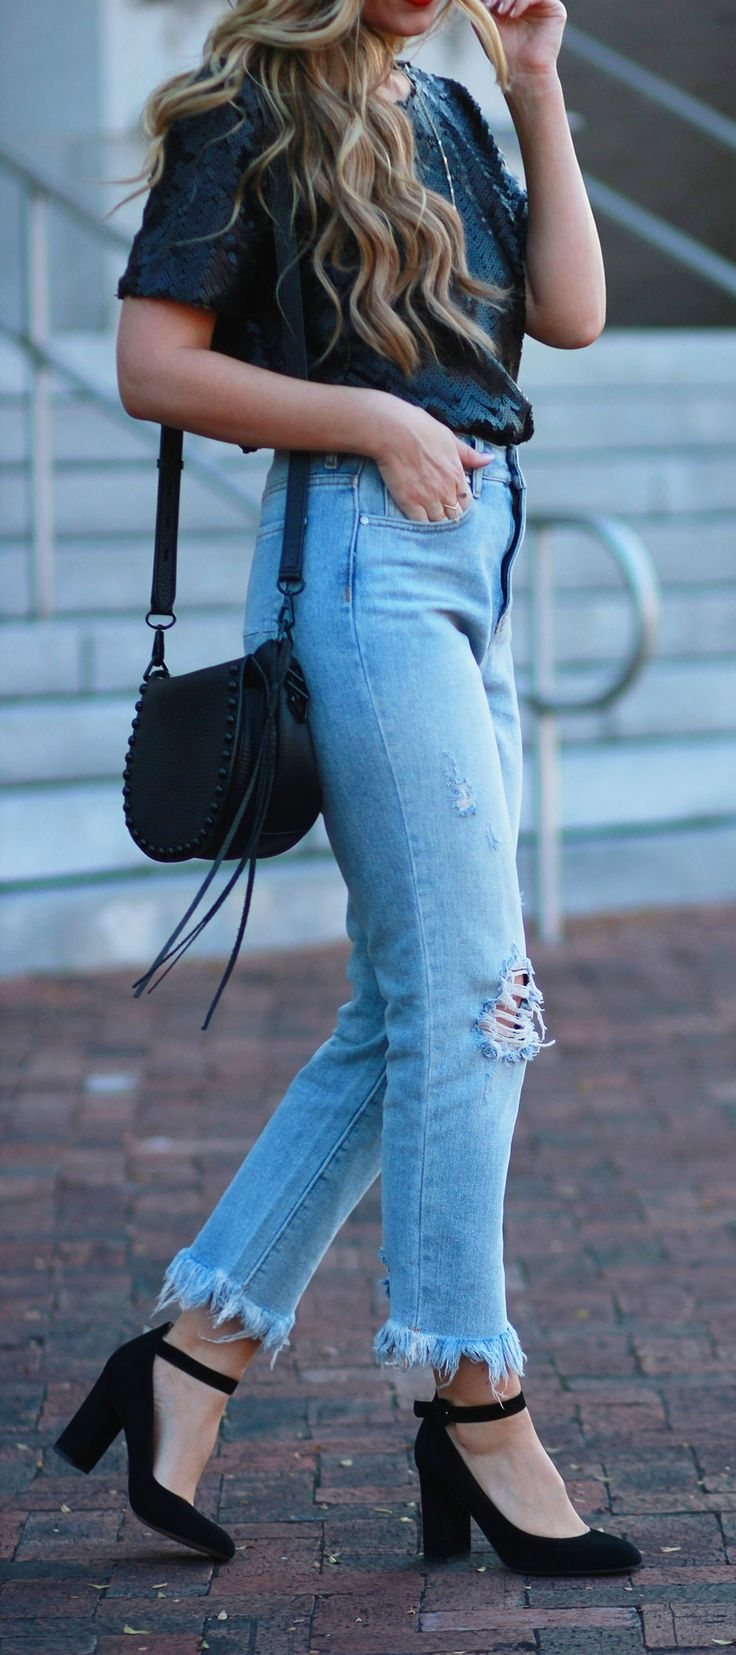 Casual holiday and New Years Eve outfit styled with back sequin top, frayed cropped jeans, suede mary jane heels and red lipstick